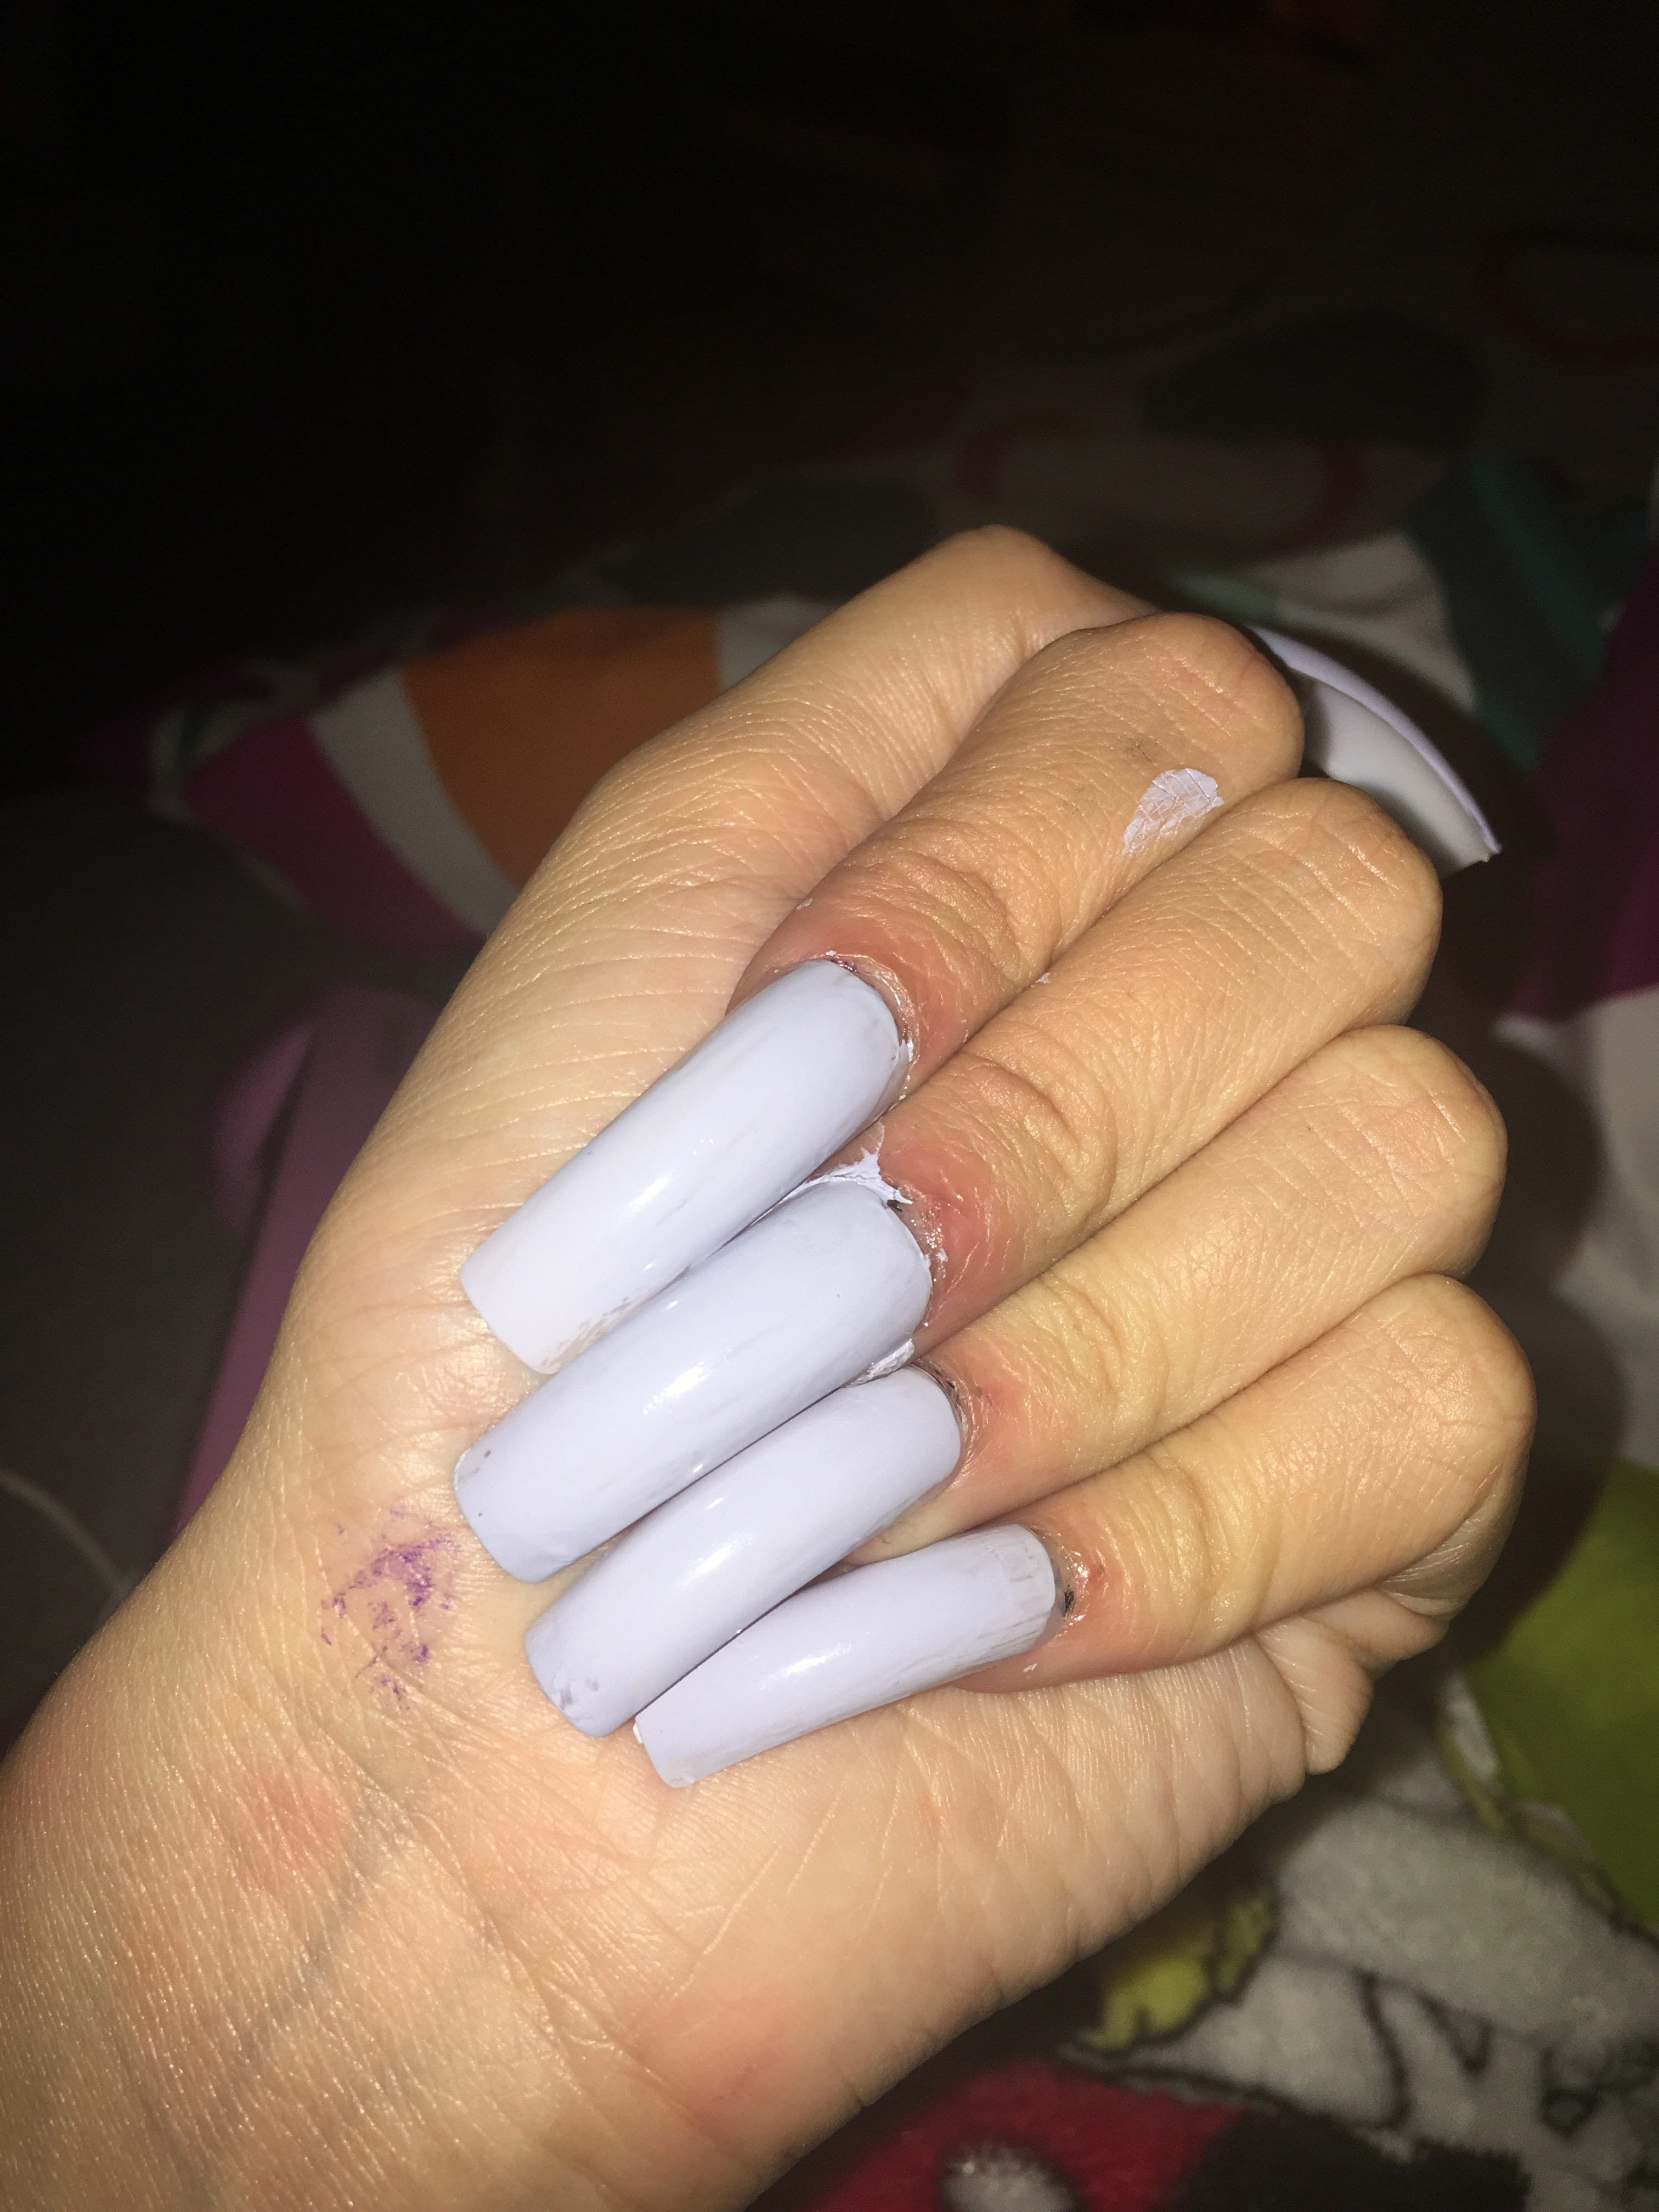 Acrylic Nails Colors For Fall Fitnailslover Nail Art Colors For Fall Nails Fitnailslover Nail Art Co Fall Acrylic Nails Cute Nails For Fall Fall Nail Colors